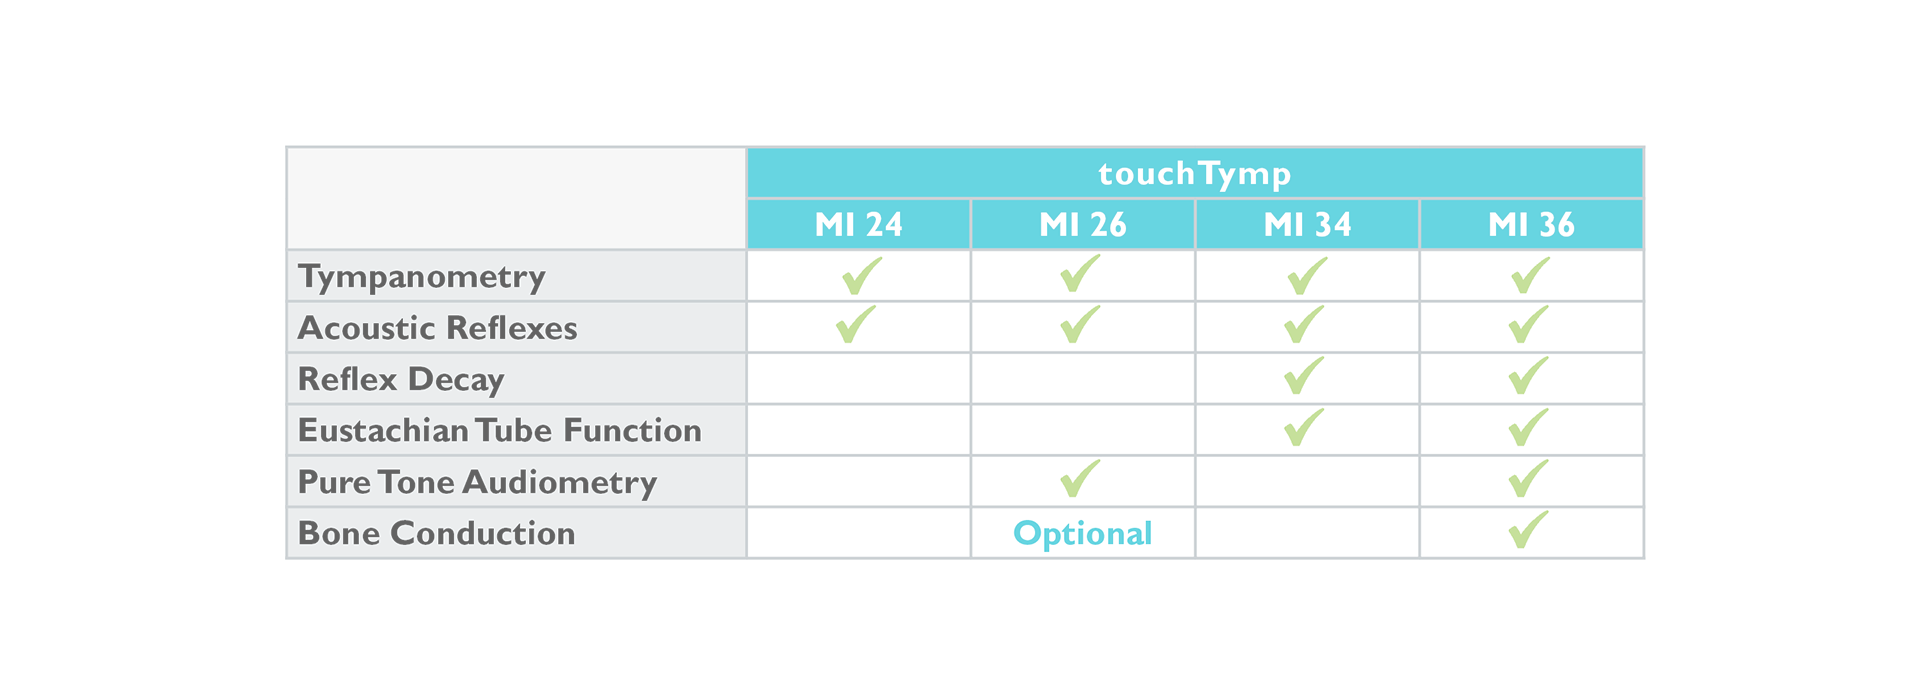 touchTymp versions and tympanometry functions